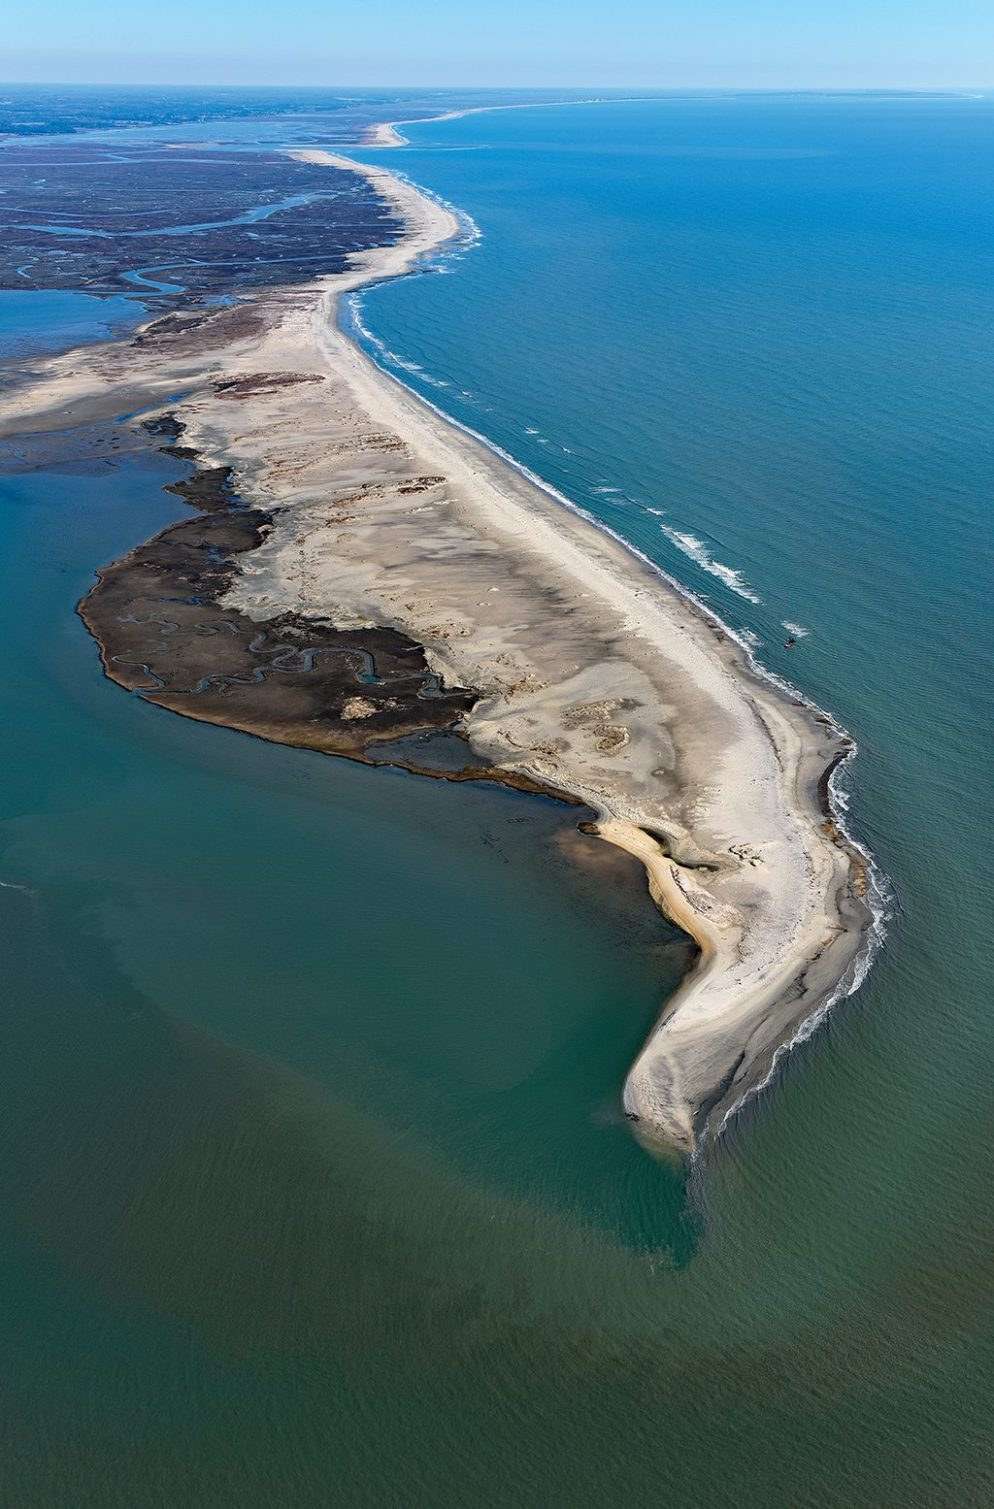 You Ll Want To Explore These Hidden Barrier Islands Off The Mid Atlantic Coast Washingtonian